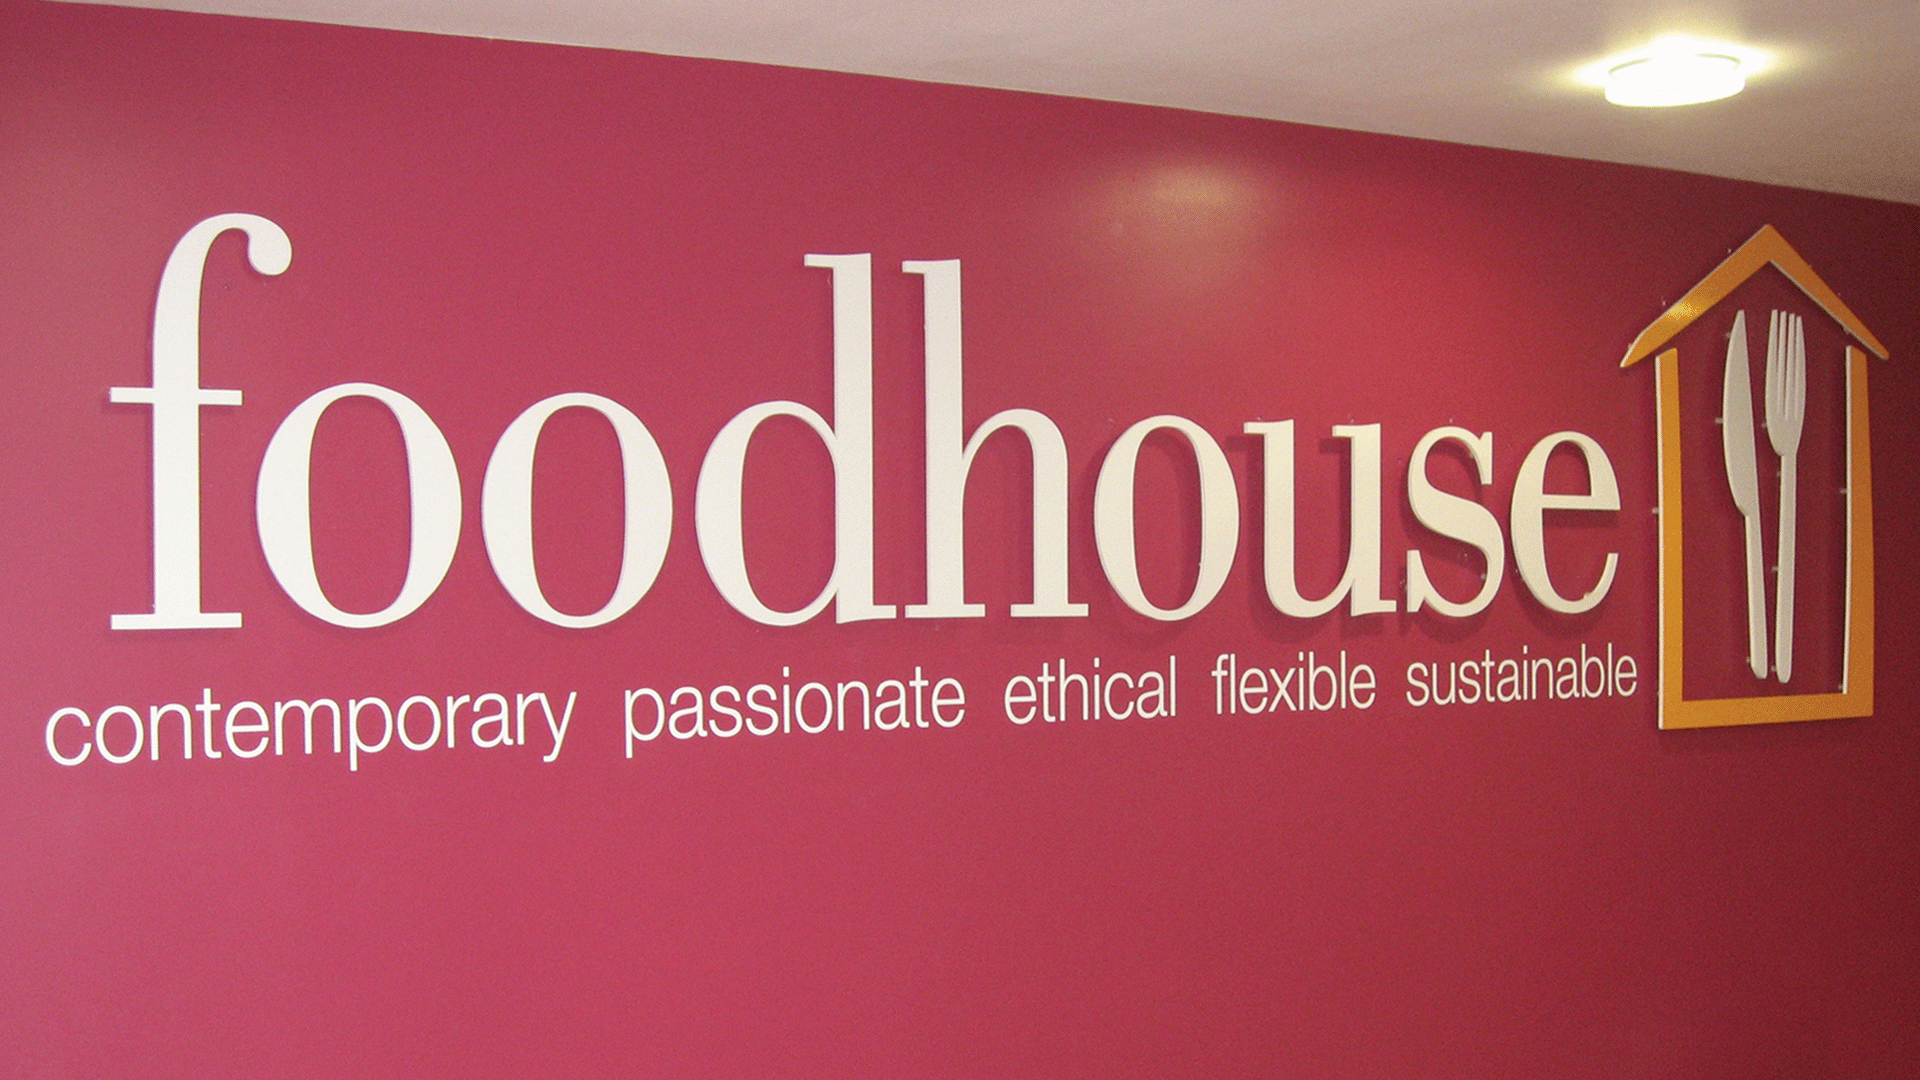 Foodhouse header